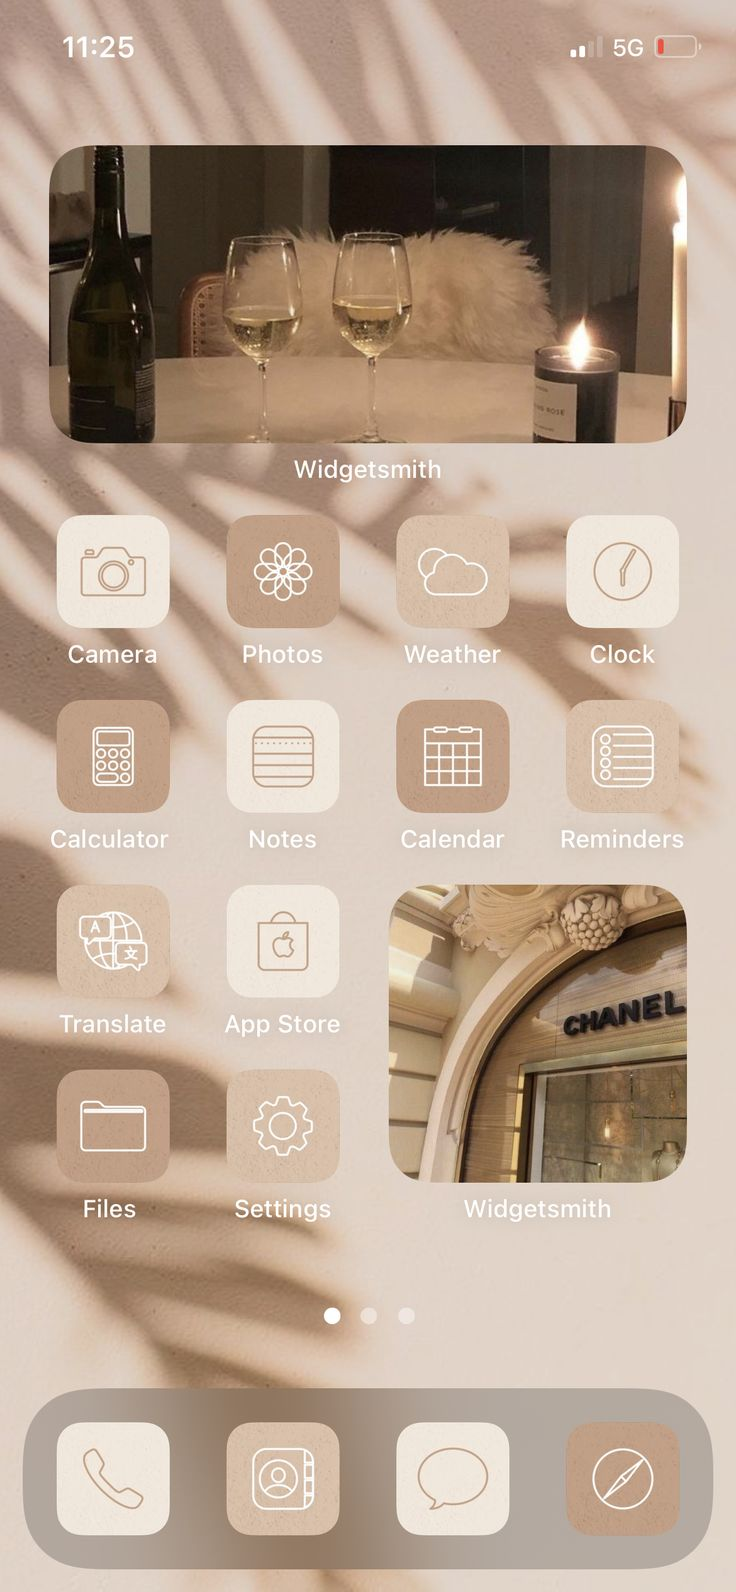 However, we may receive a portion of sales if you purchase a product through a link in this article. Neutral Palette App Icons, iOS 14 Icons Aesthetic, Boho ...